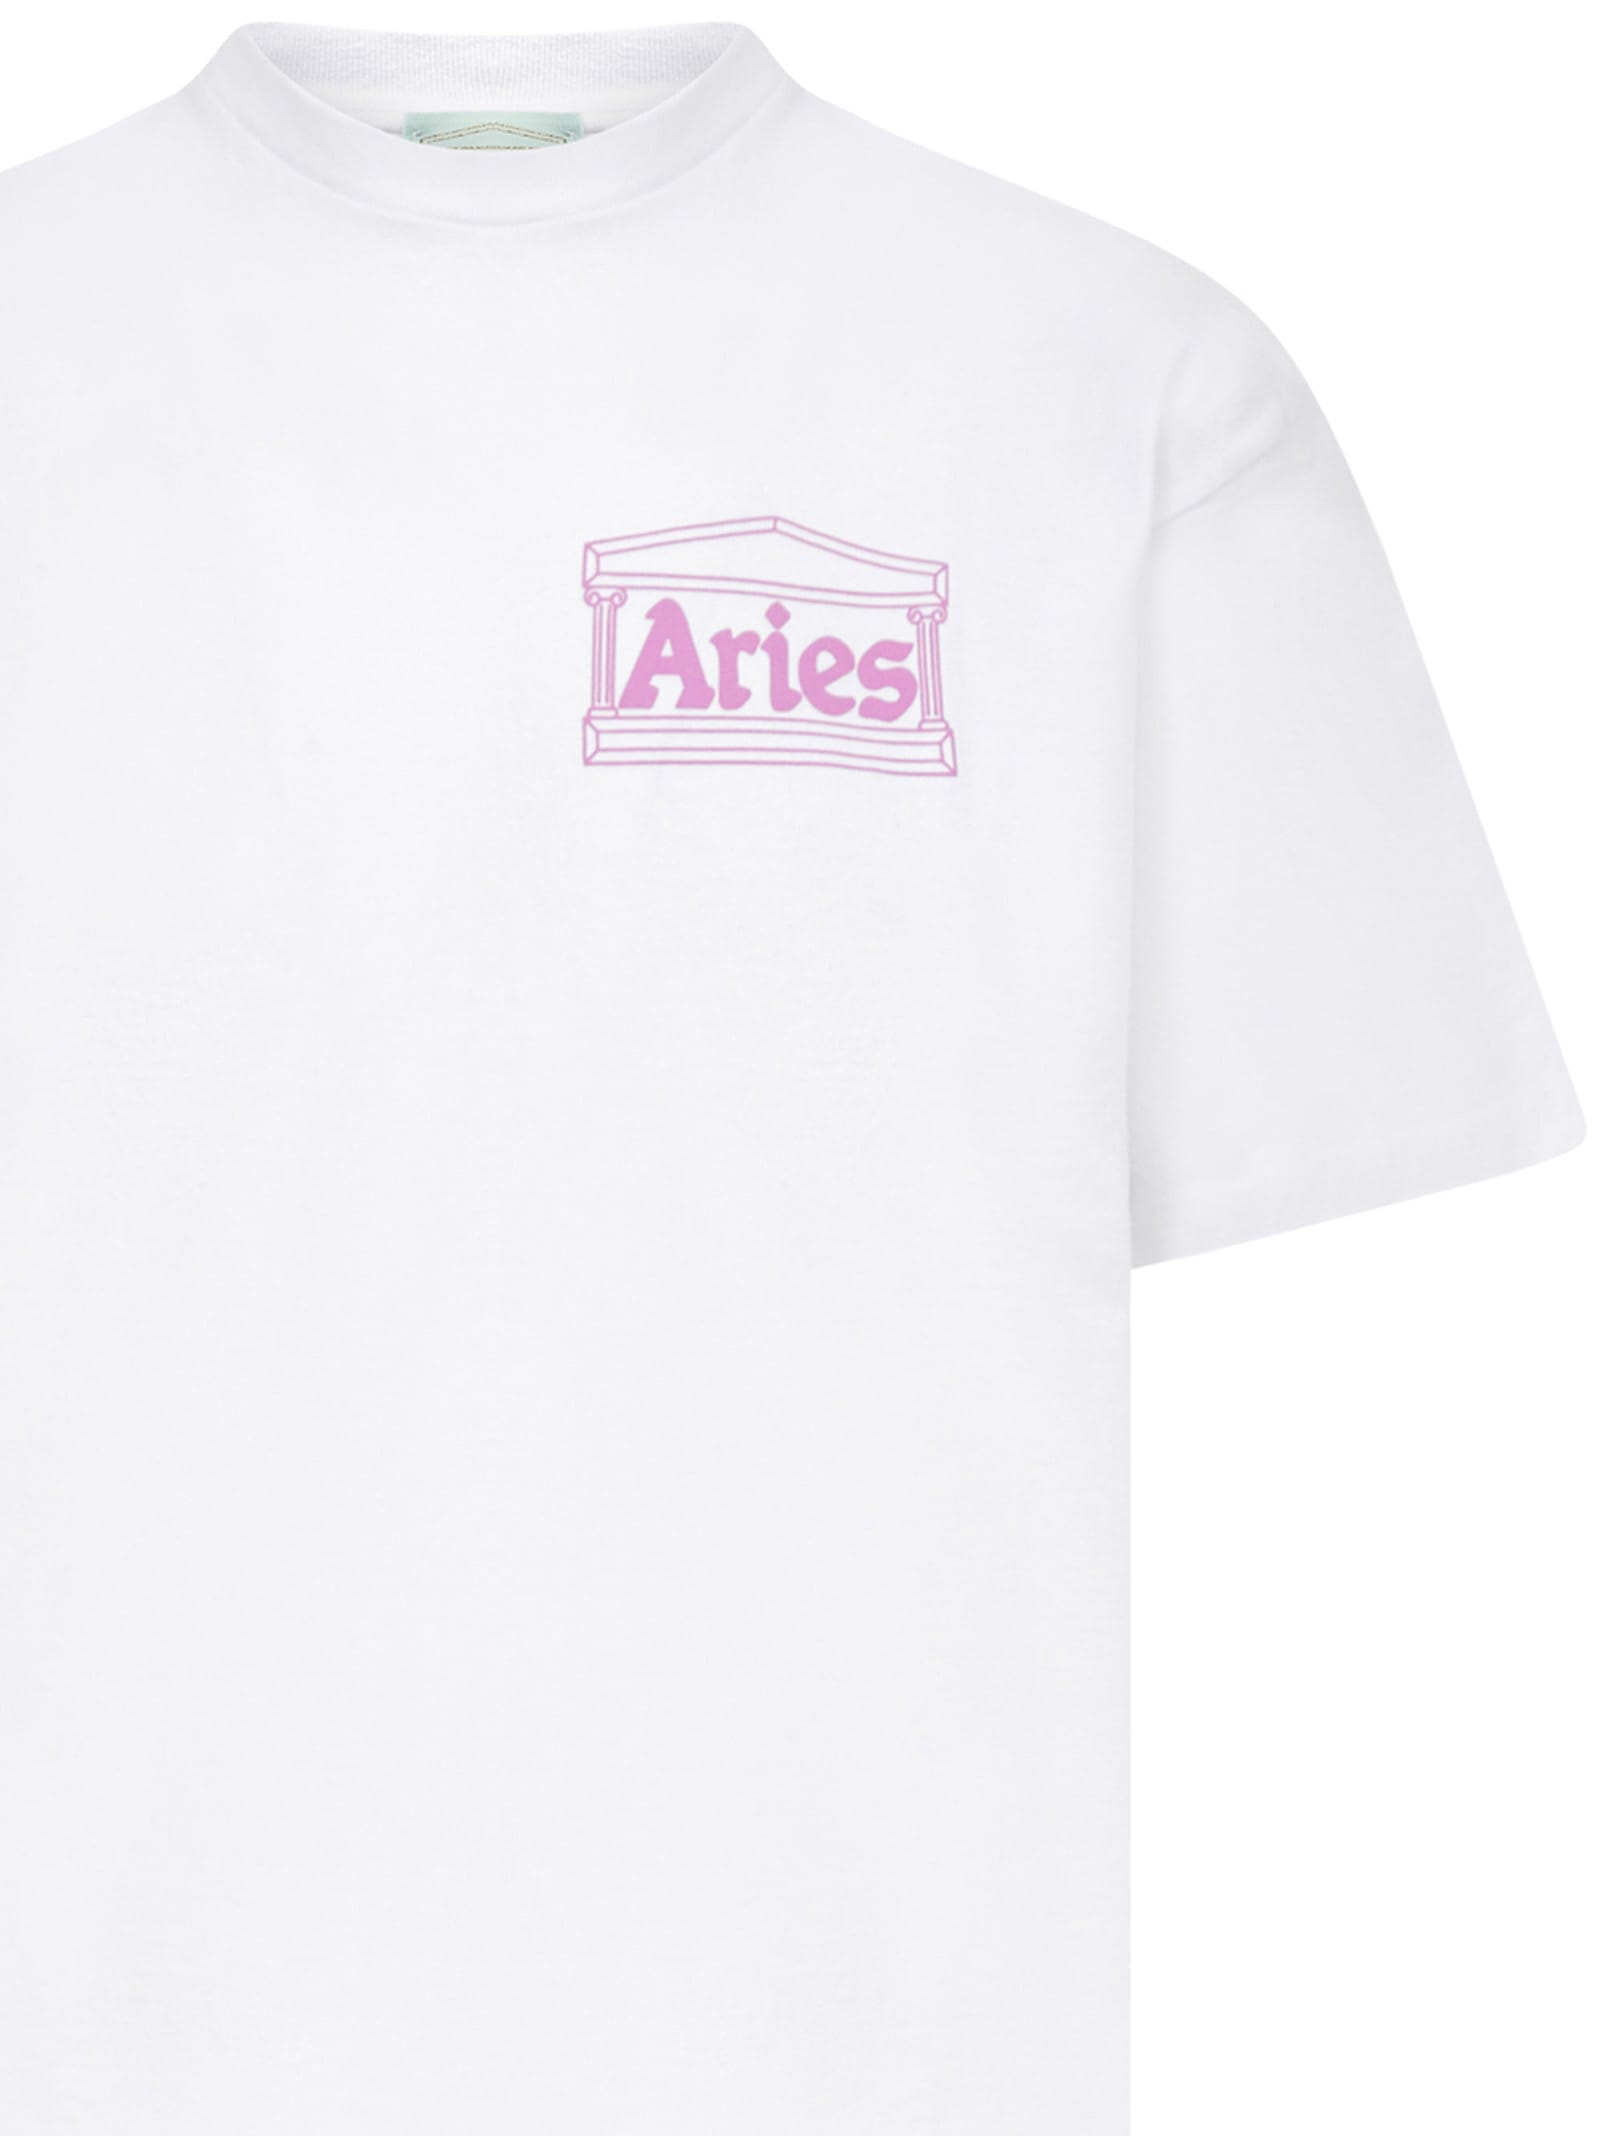 Particular Aries Temple T-shirt - Top Quality